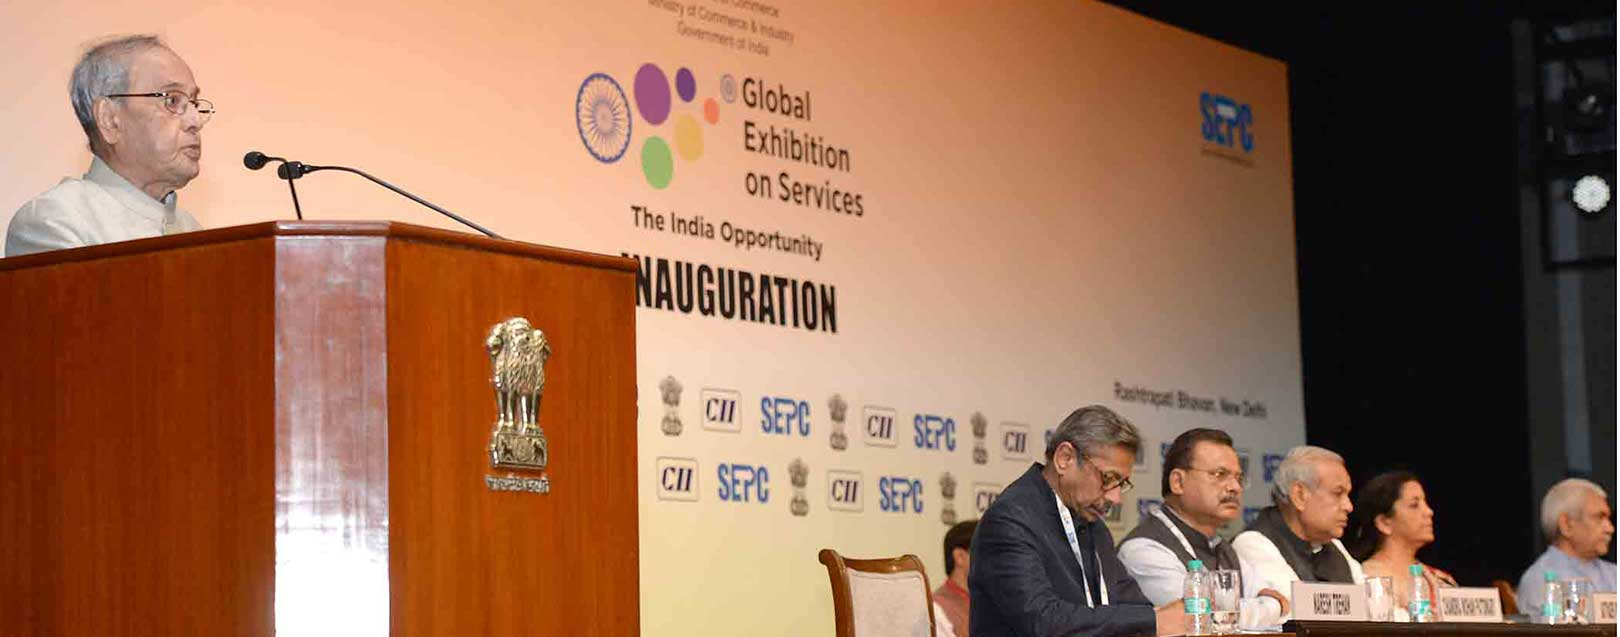 Global services trade is far less than merchandise trade: President